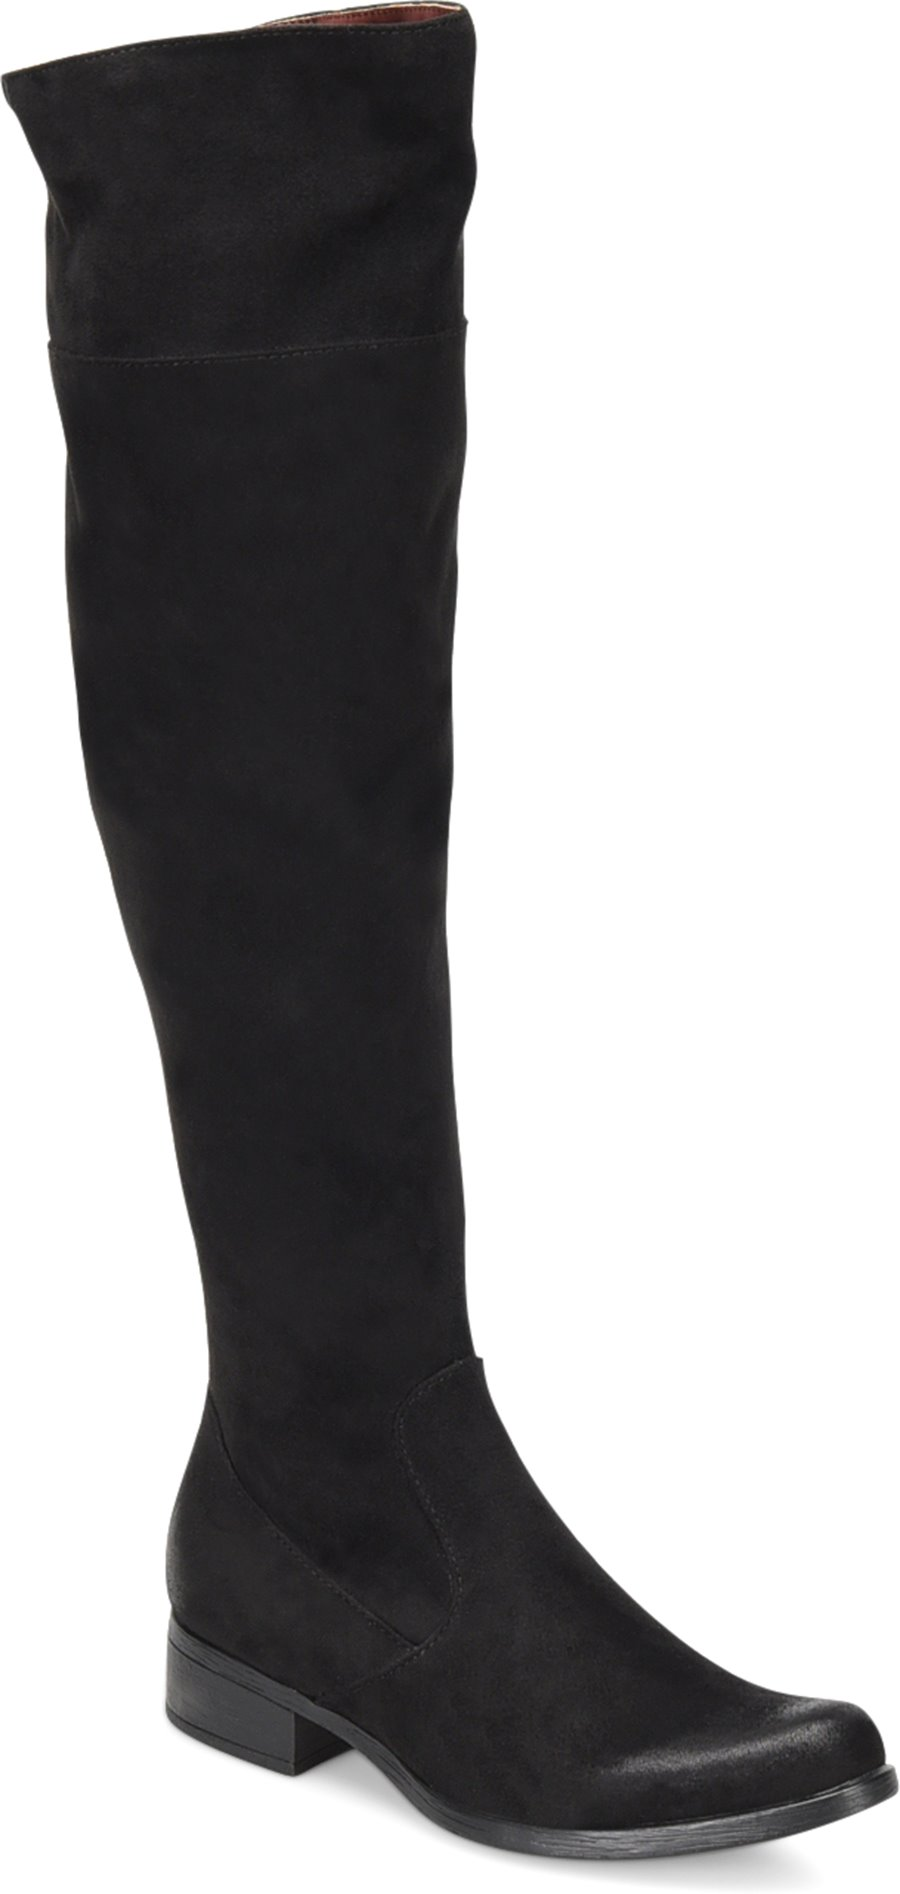 Boc Kace In Black Stretch Fabric Boc Womens Boots On